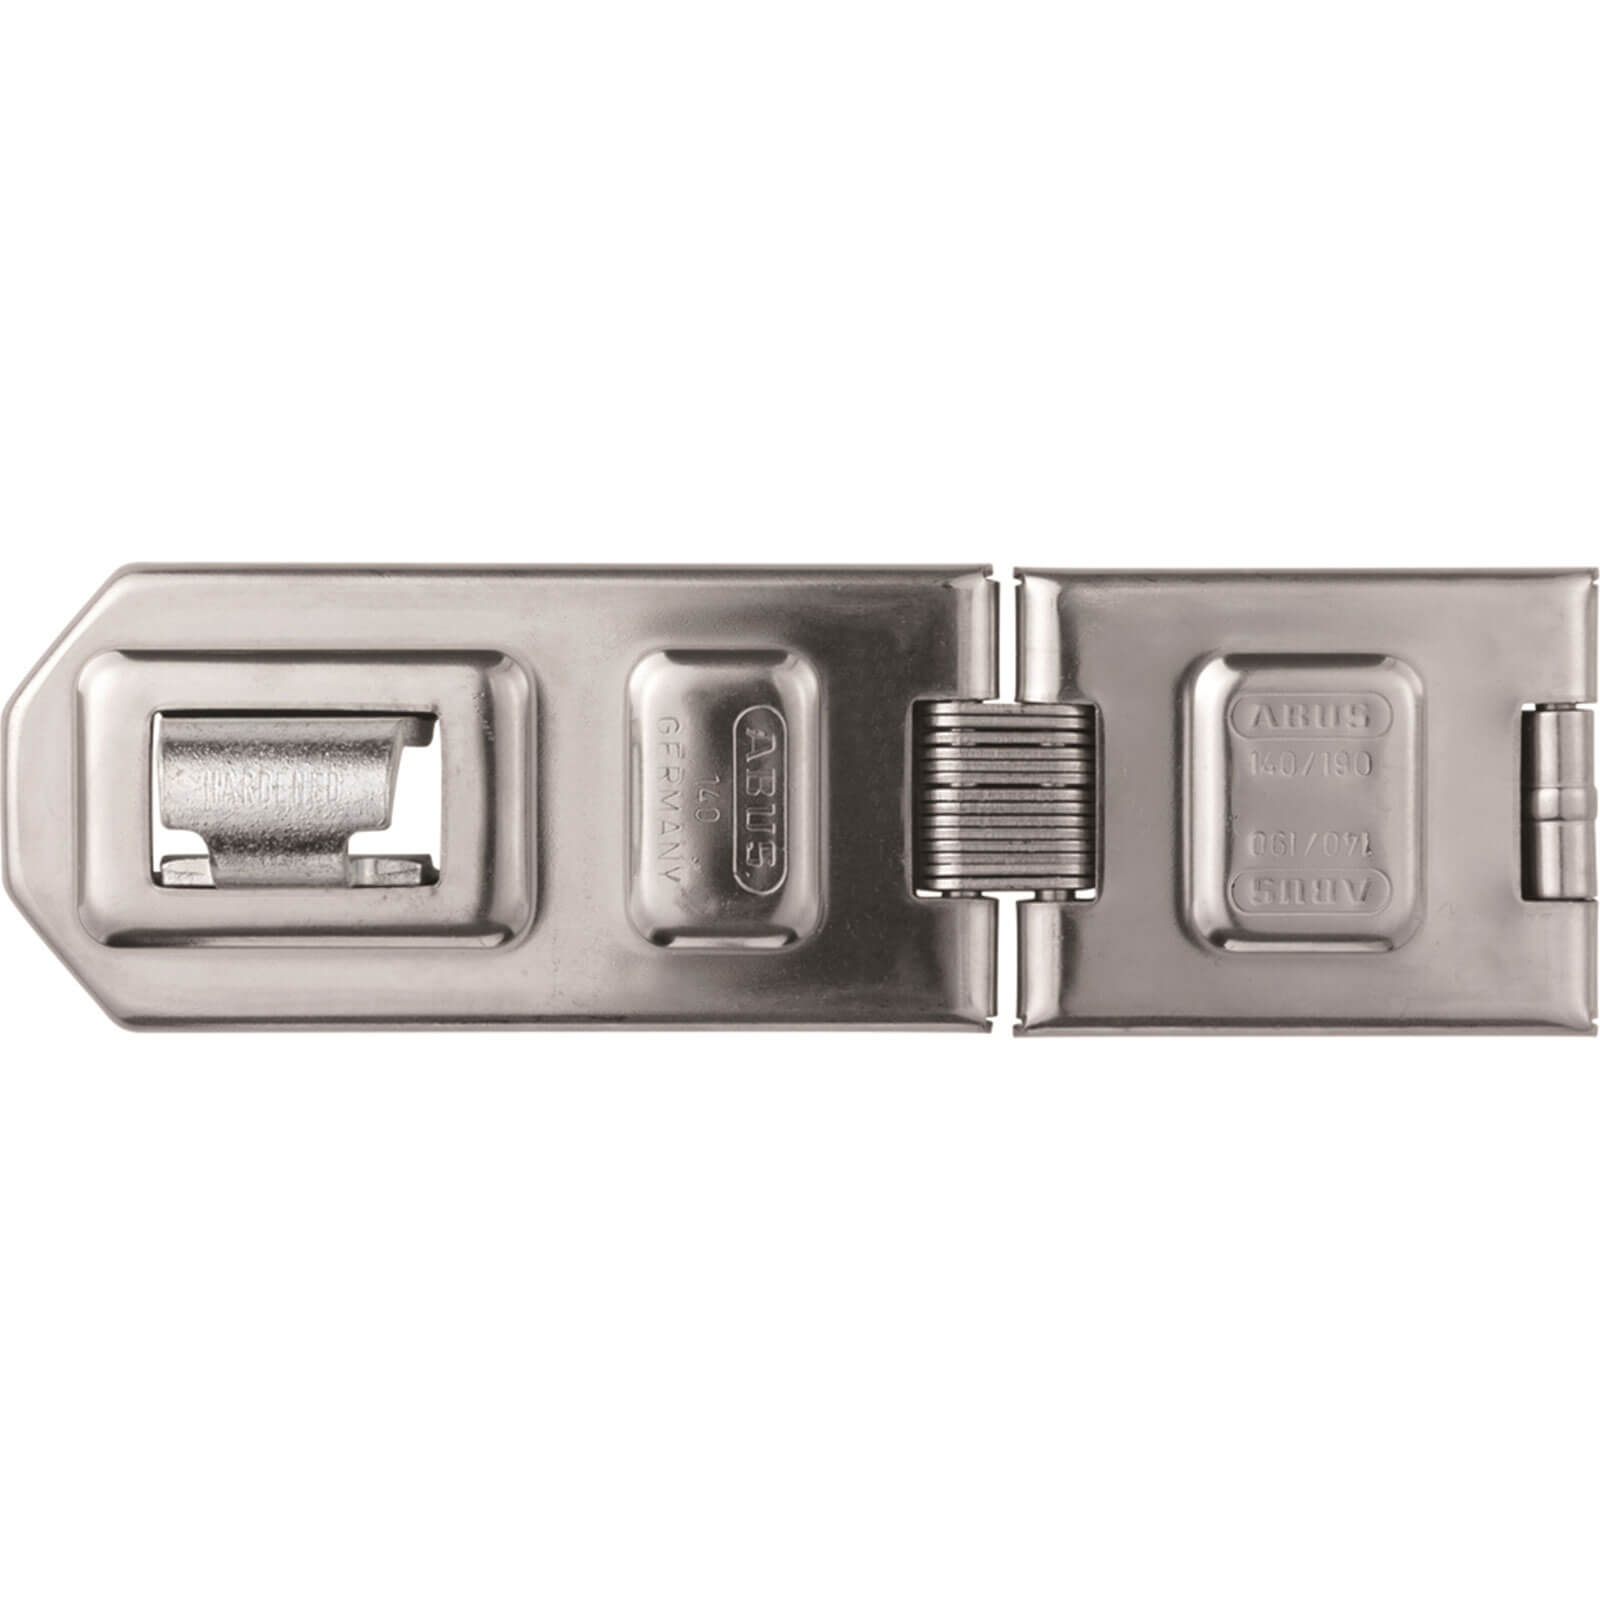 Image of Abus 140 Series Diskus Hasp & Staple Double Jointed 190mm